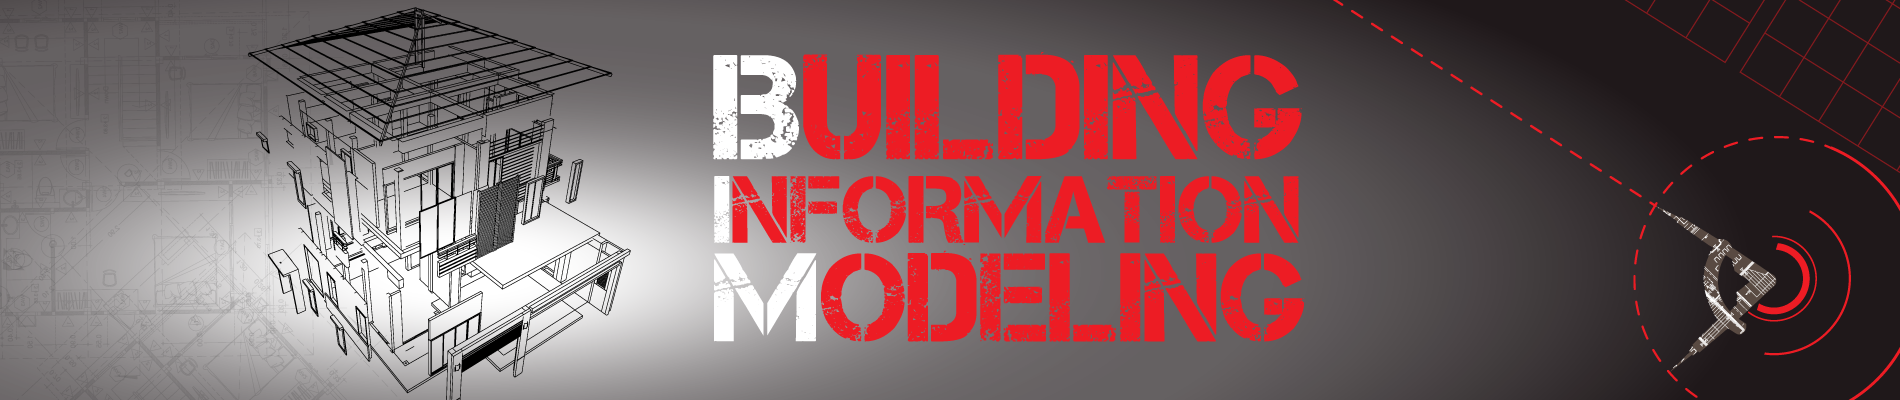 BIM - Building Information Modeling con Revit